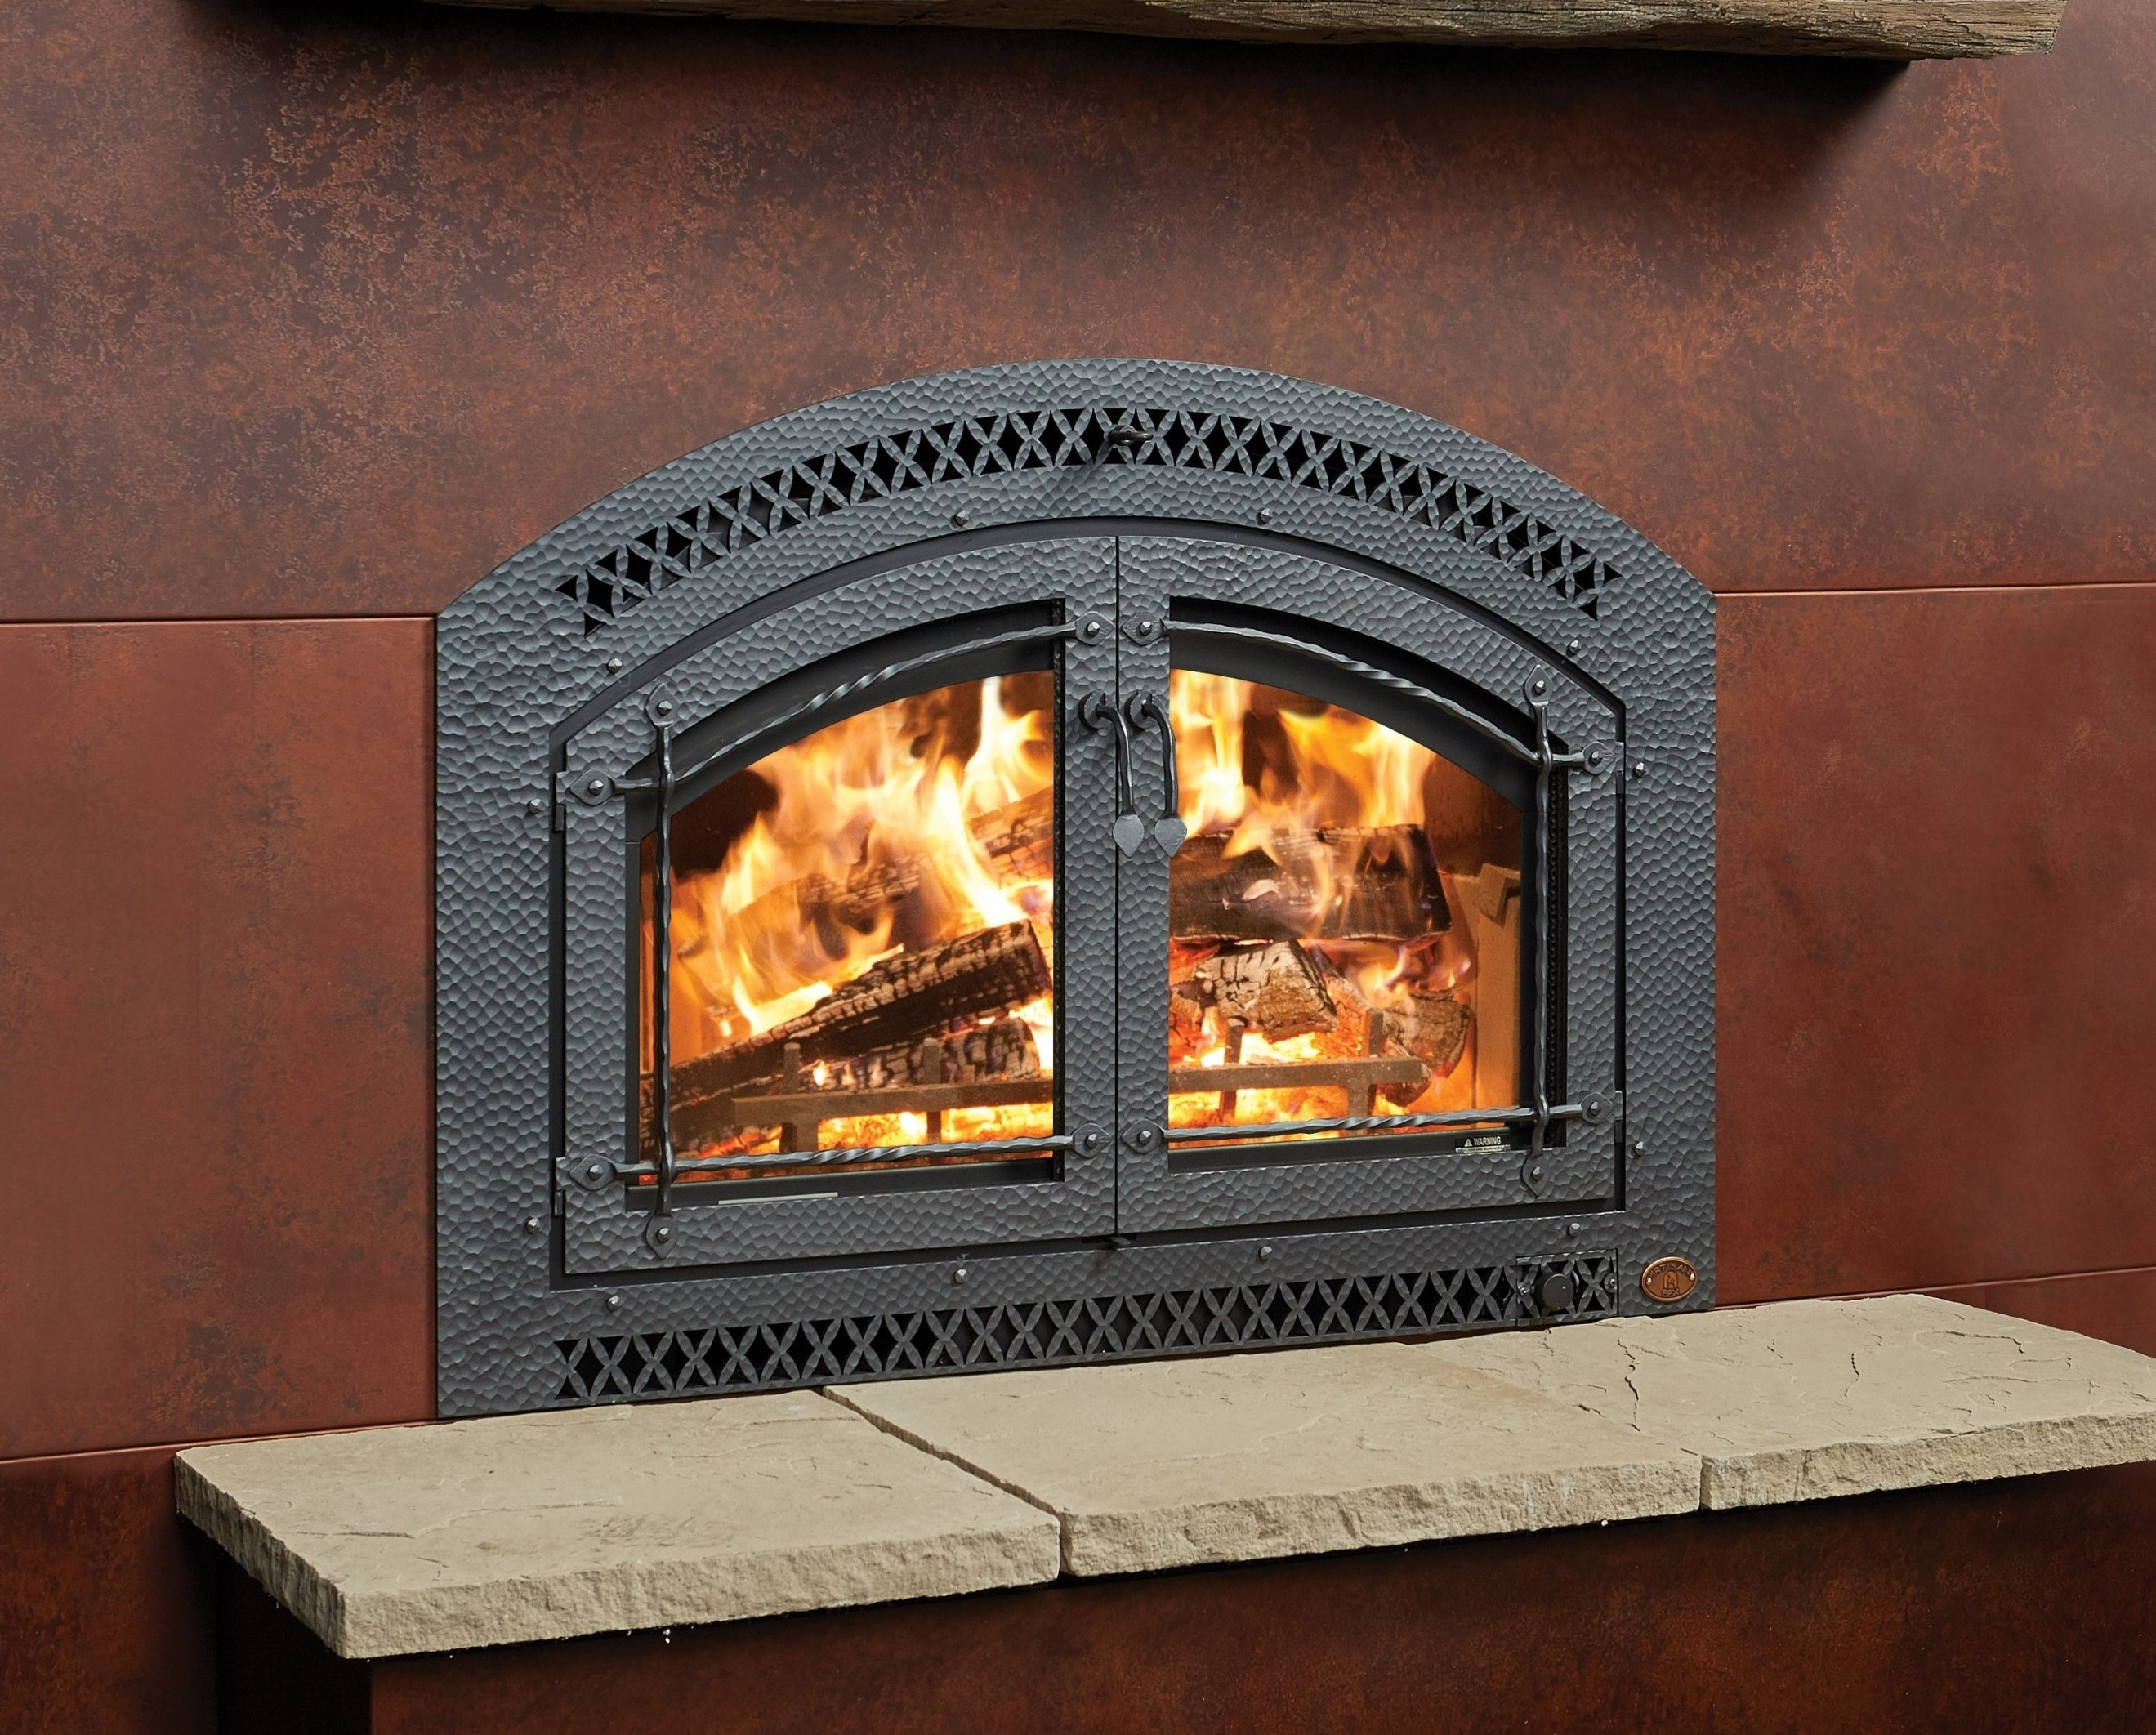 Image of the 44 Elite Fireplace Xtrodinair Wood Fireplace with a link to the product page.